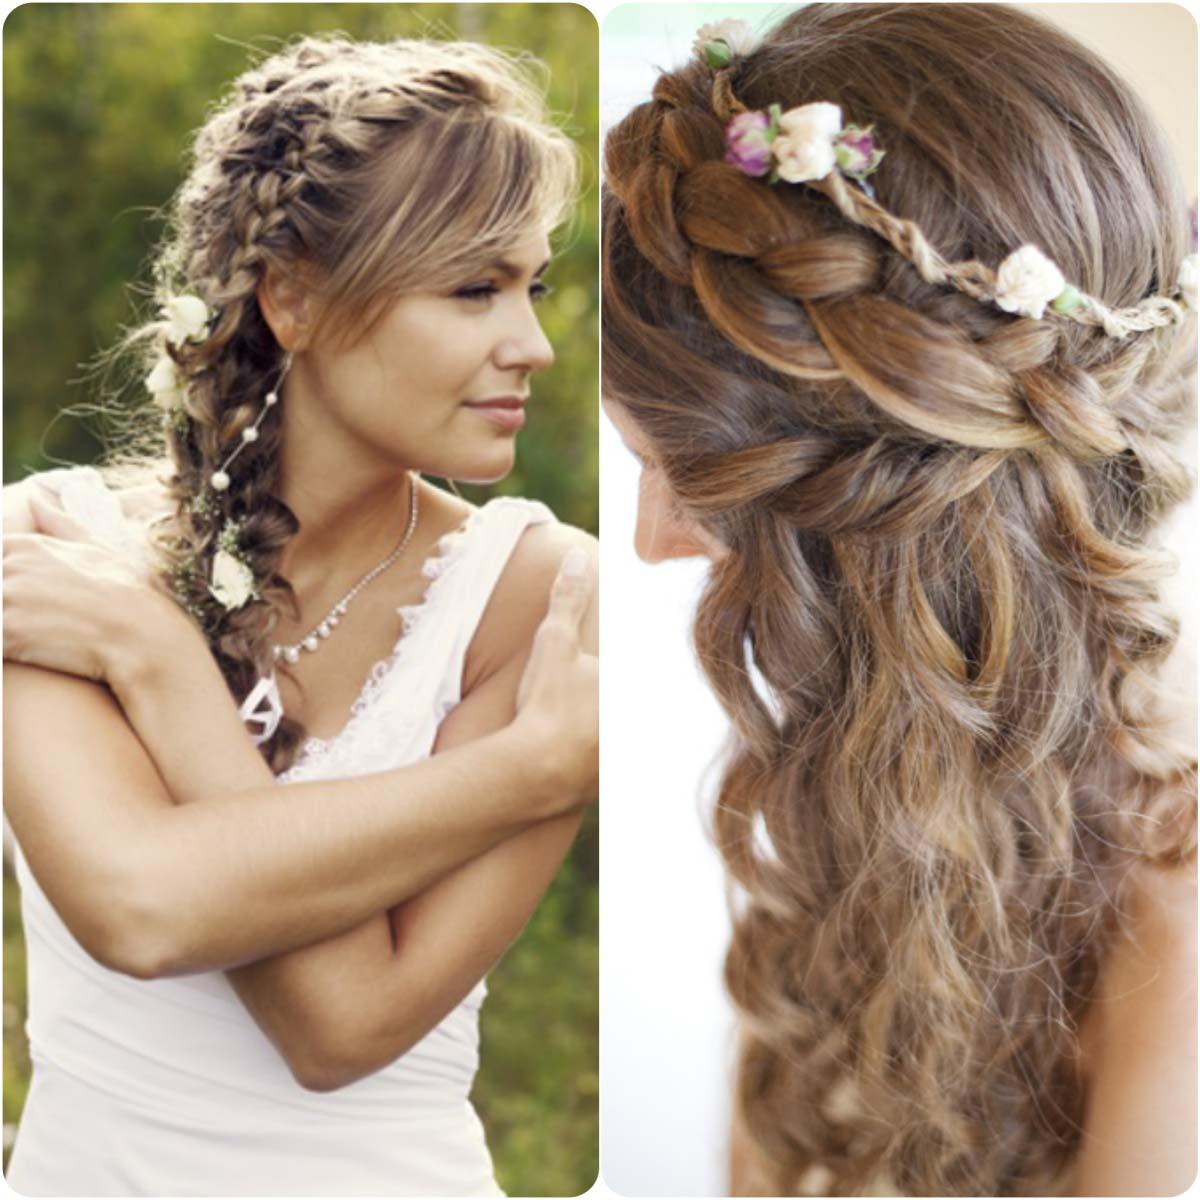 Wedding Hairstyle With Braids: 20 Braided Hairstyles For Wedding Brides 2016